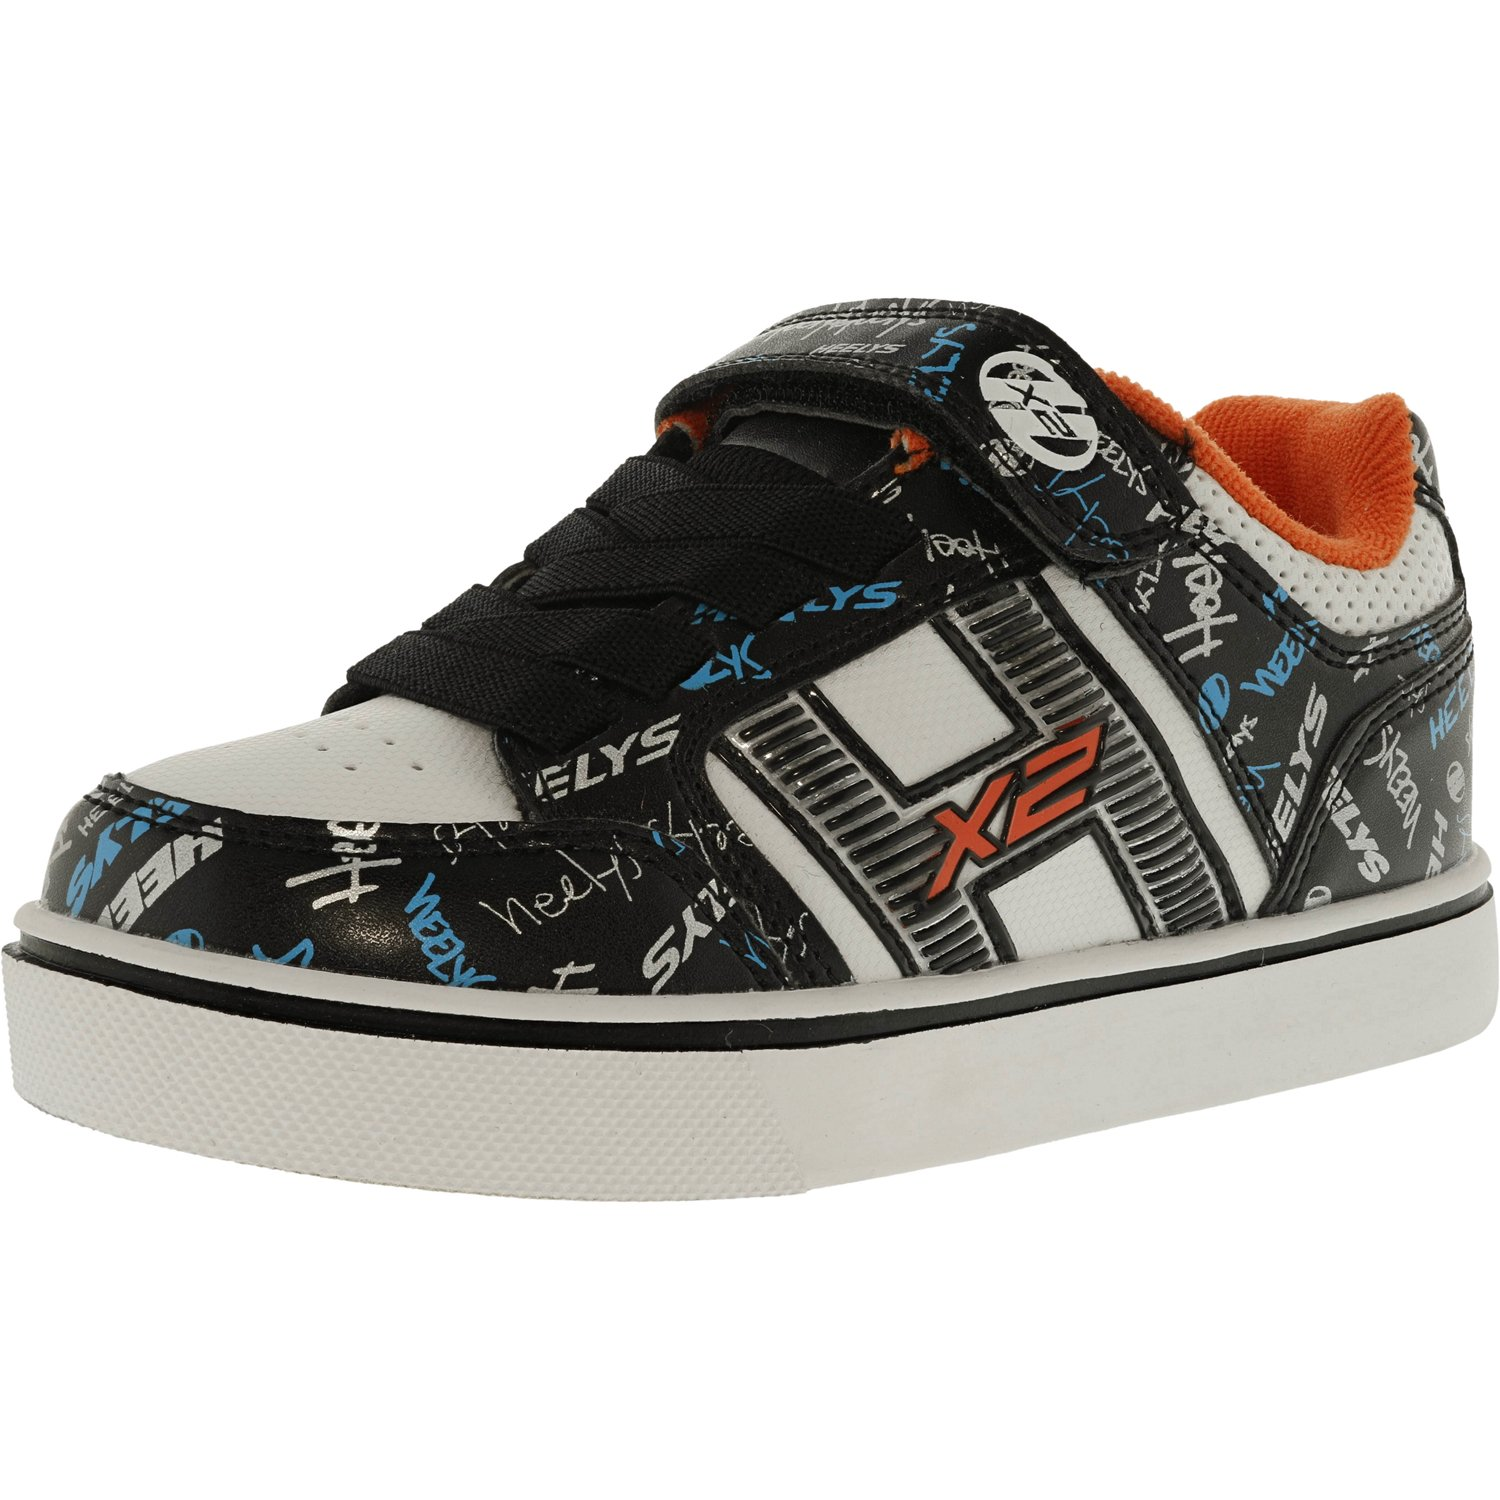 Heelys Boy's Bolt Plus X2 Black / White Orange Cyan Ankle-High Fashion Sneaker - 2M